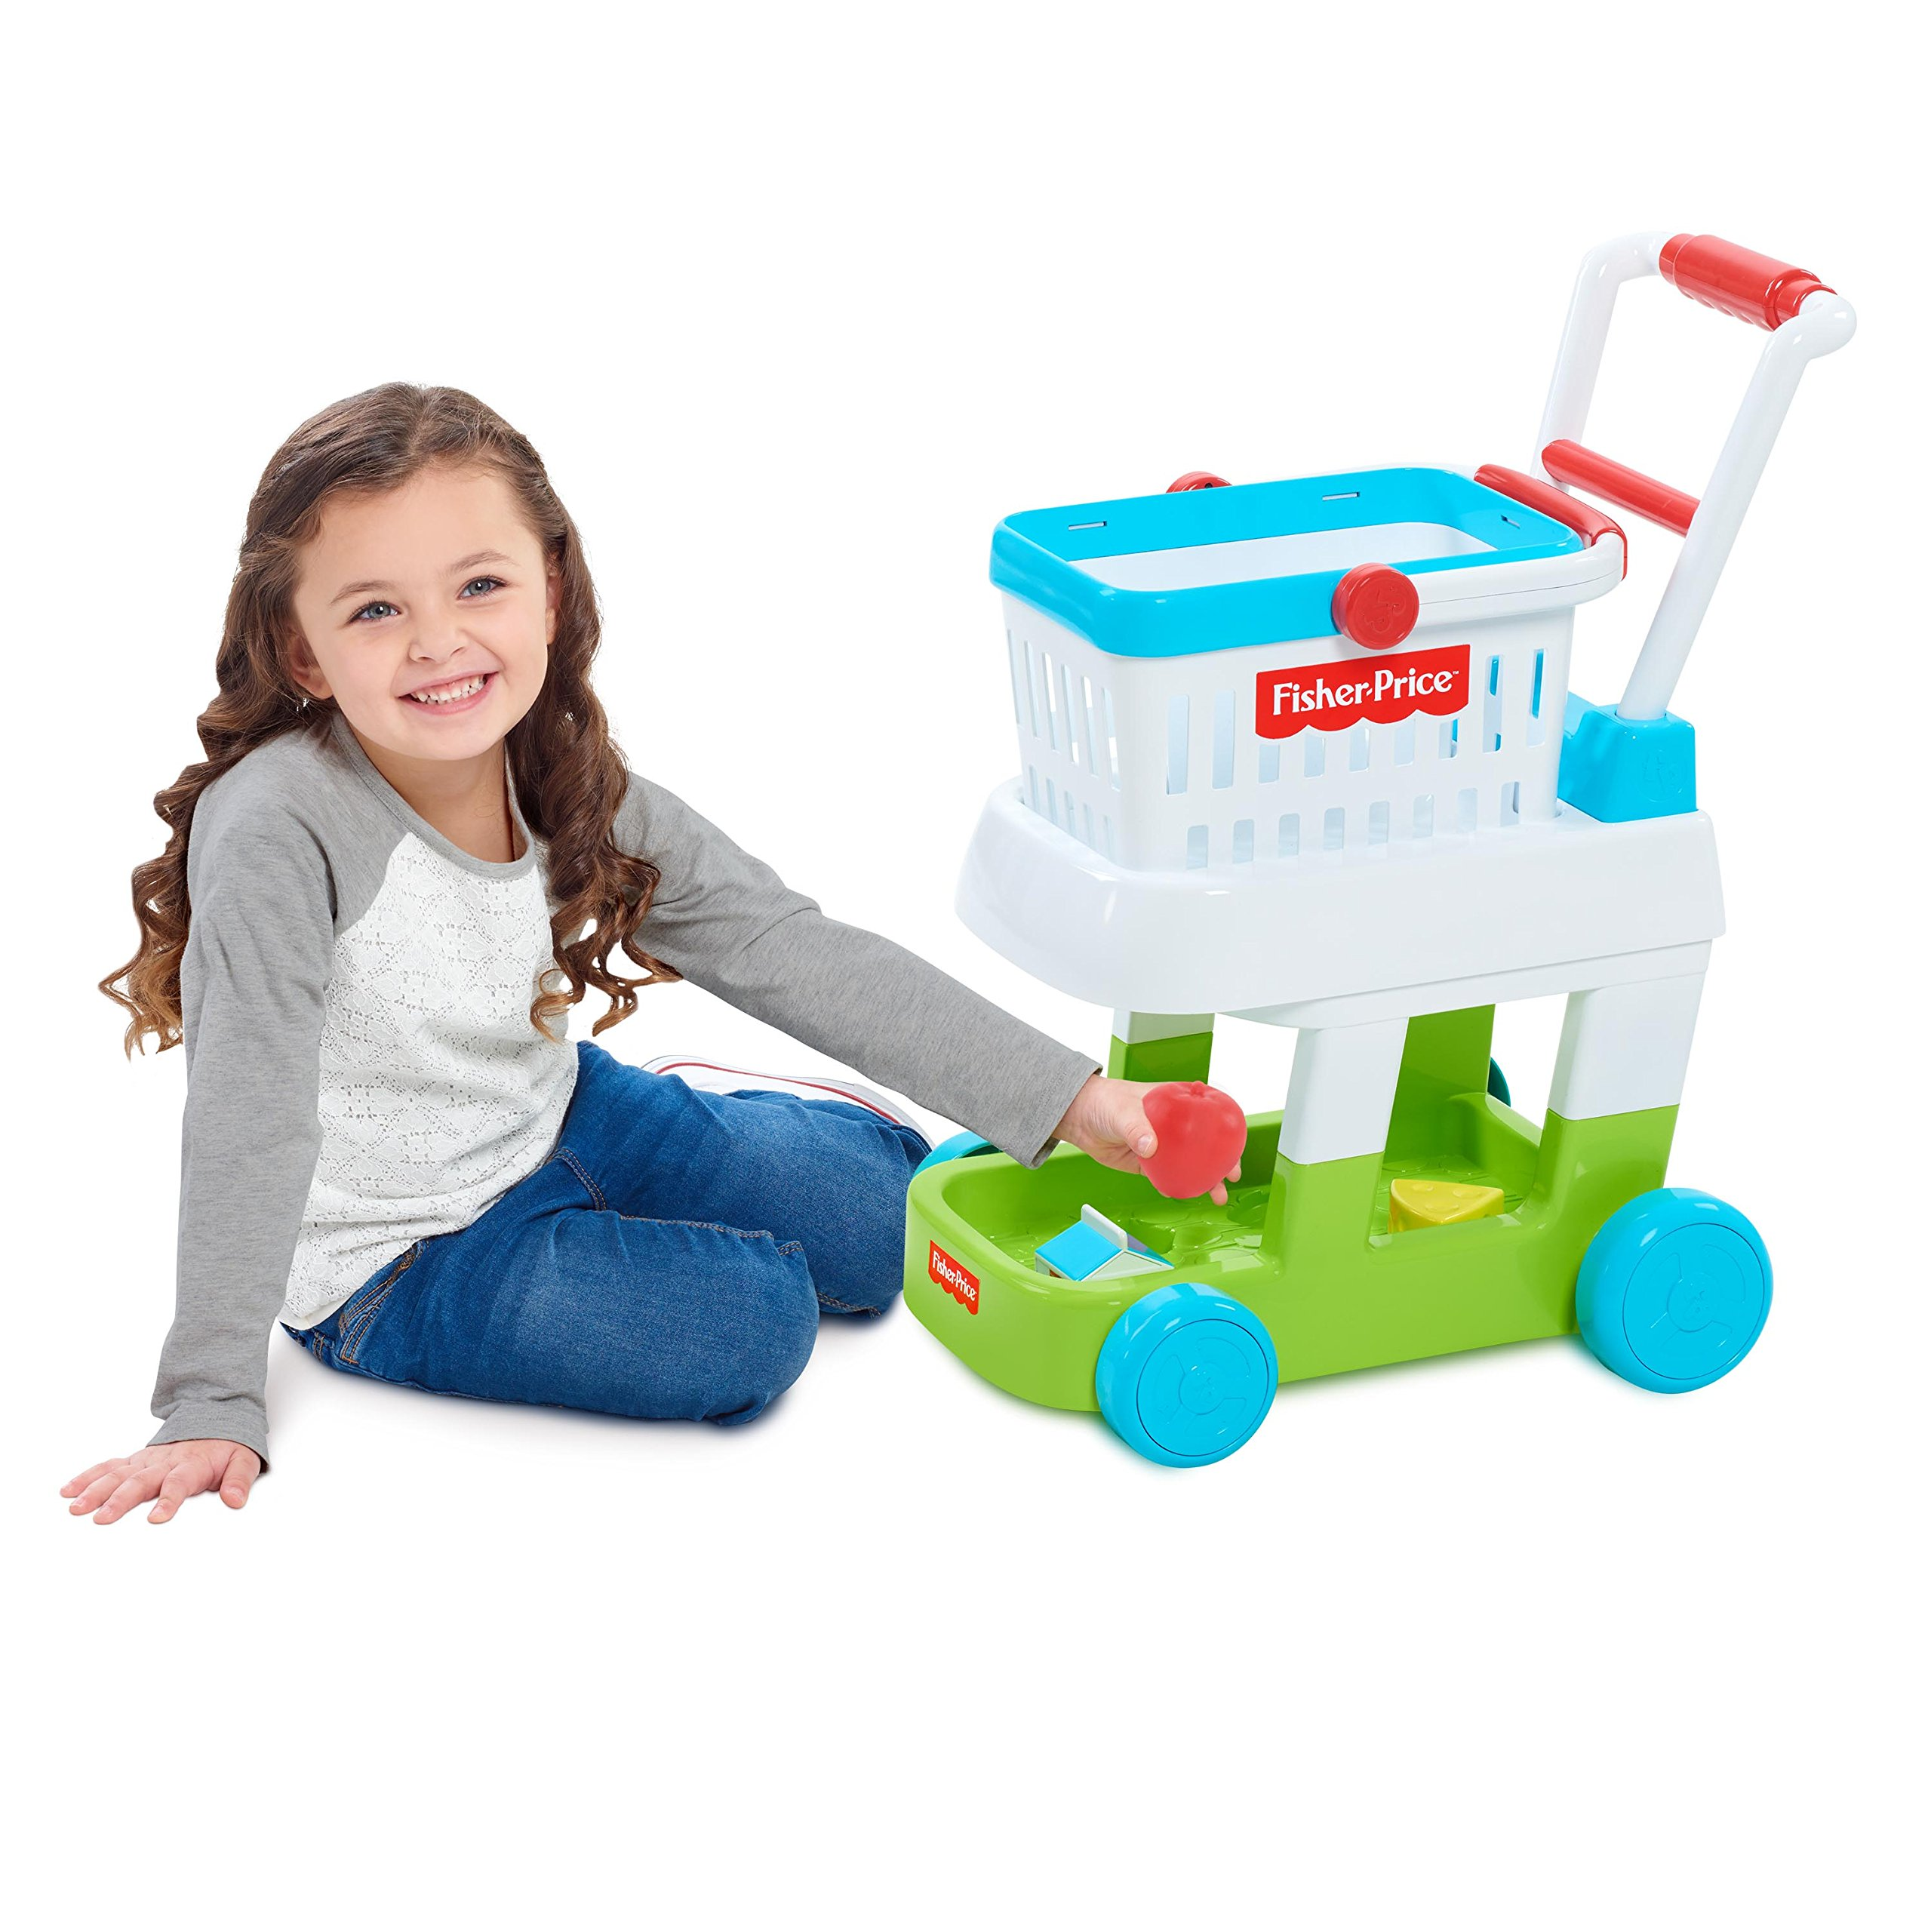 Fisher-Price 93525 Shopping Cart Toys, Multicolor by Fisher-Price (Image #4)